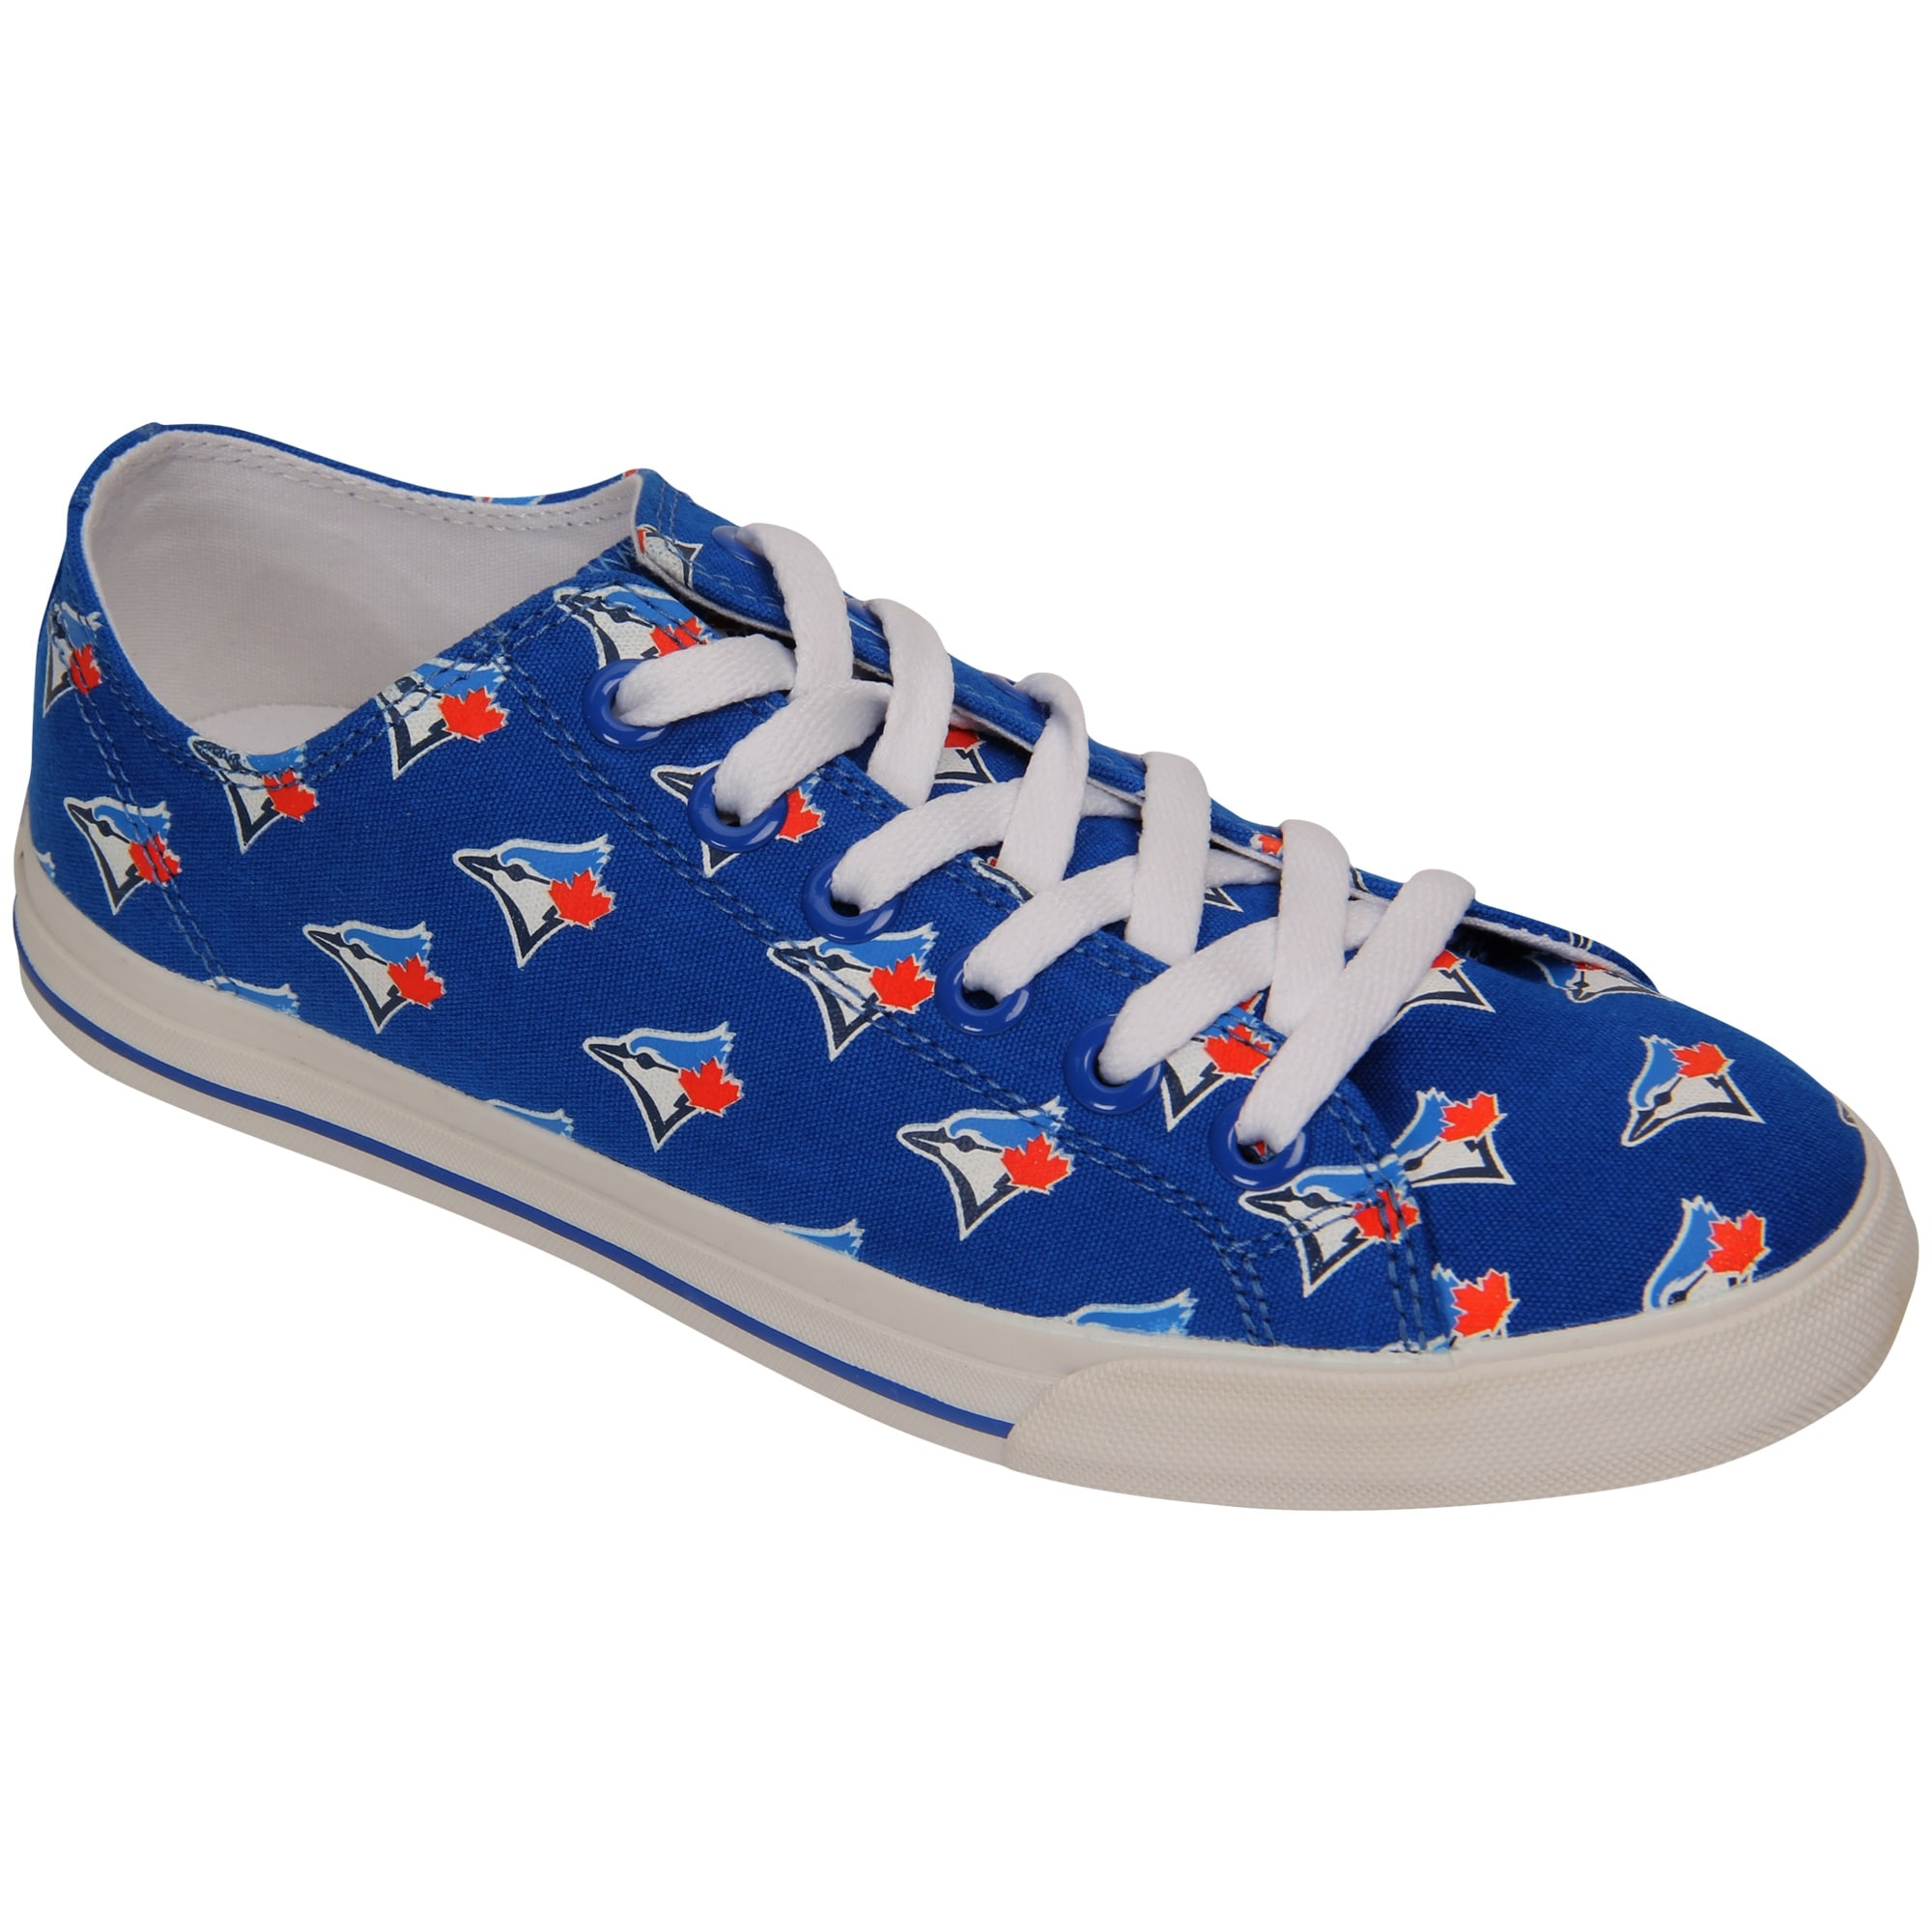 Toronto Blue Jays Row One Women's Victory Sneakers